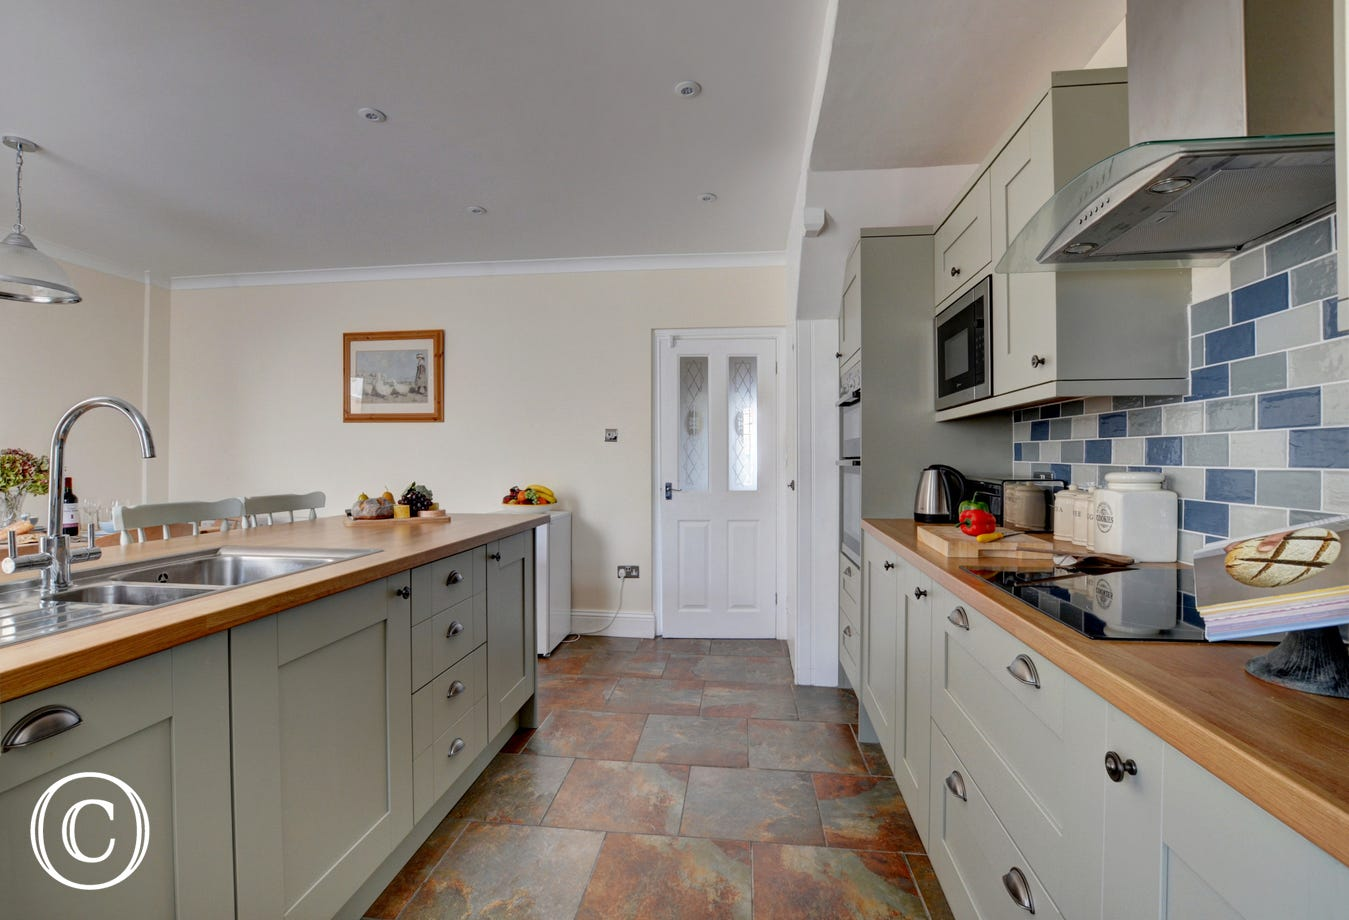 Lots of space in the kitchen to entertain friends and family